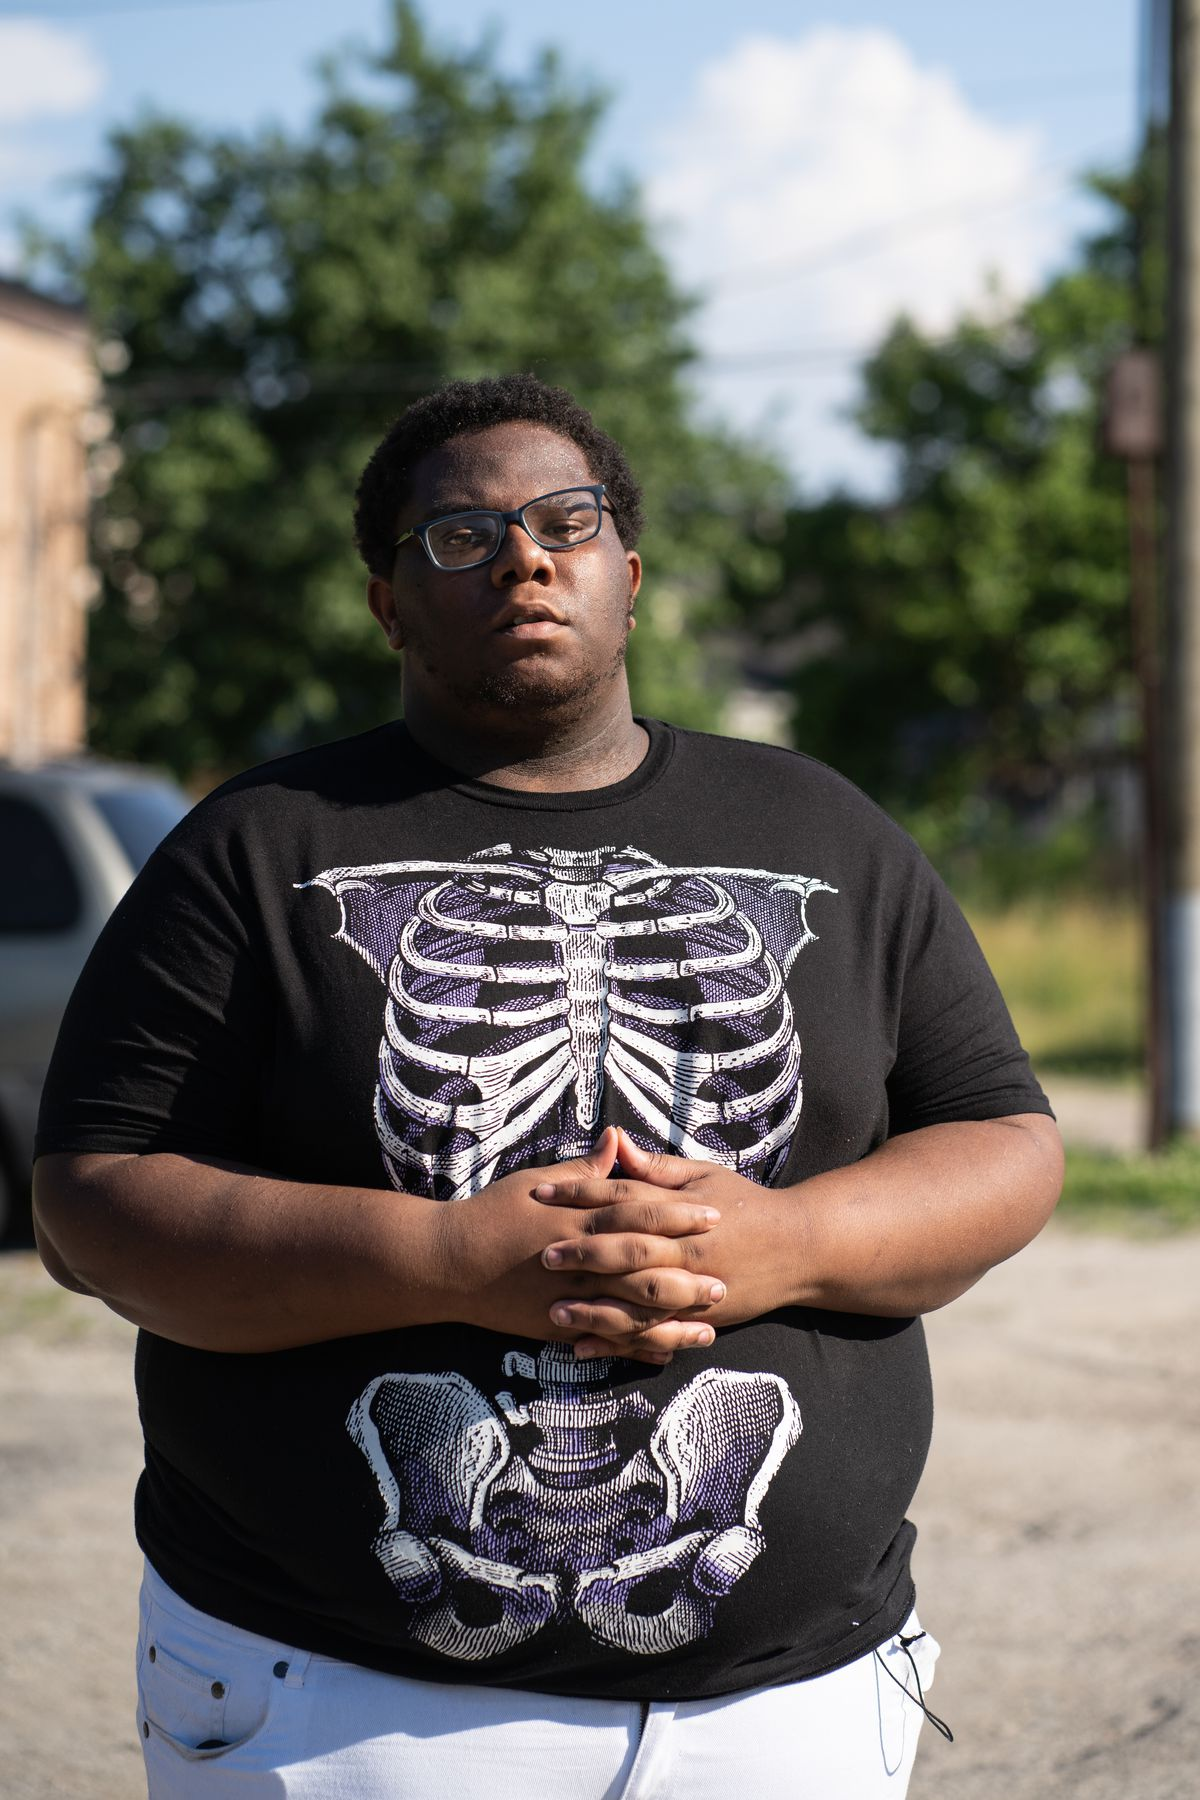 A young man wearing glasses and a black skeleton t-shirt stands with his hands interlaced on a sunny day.